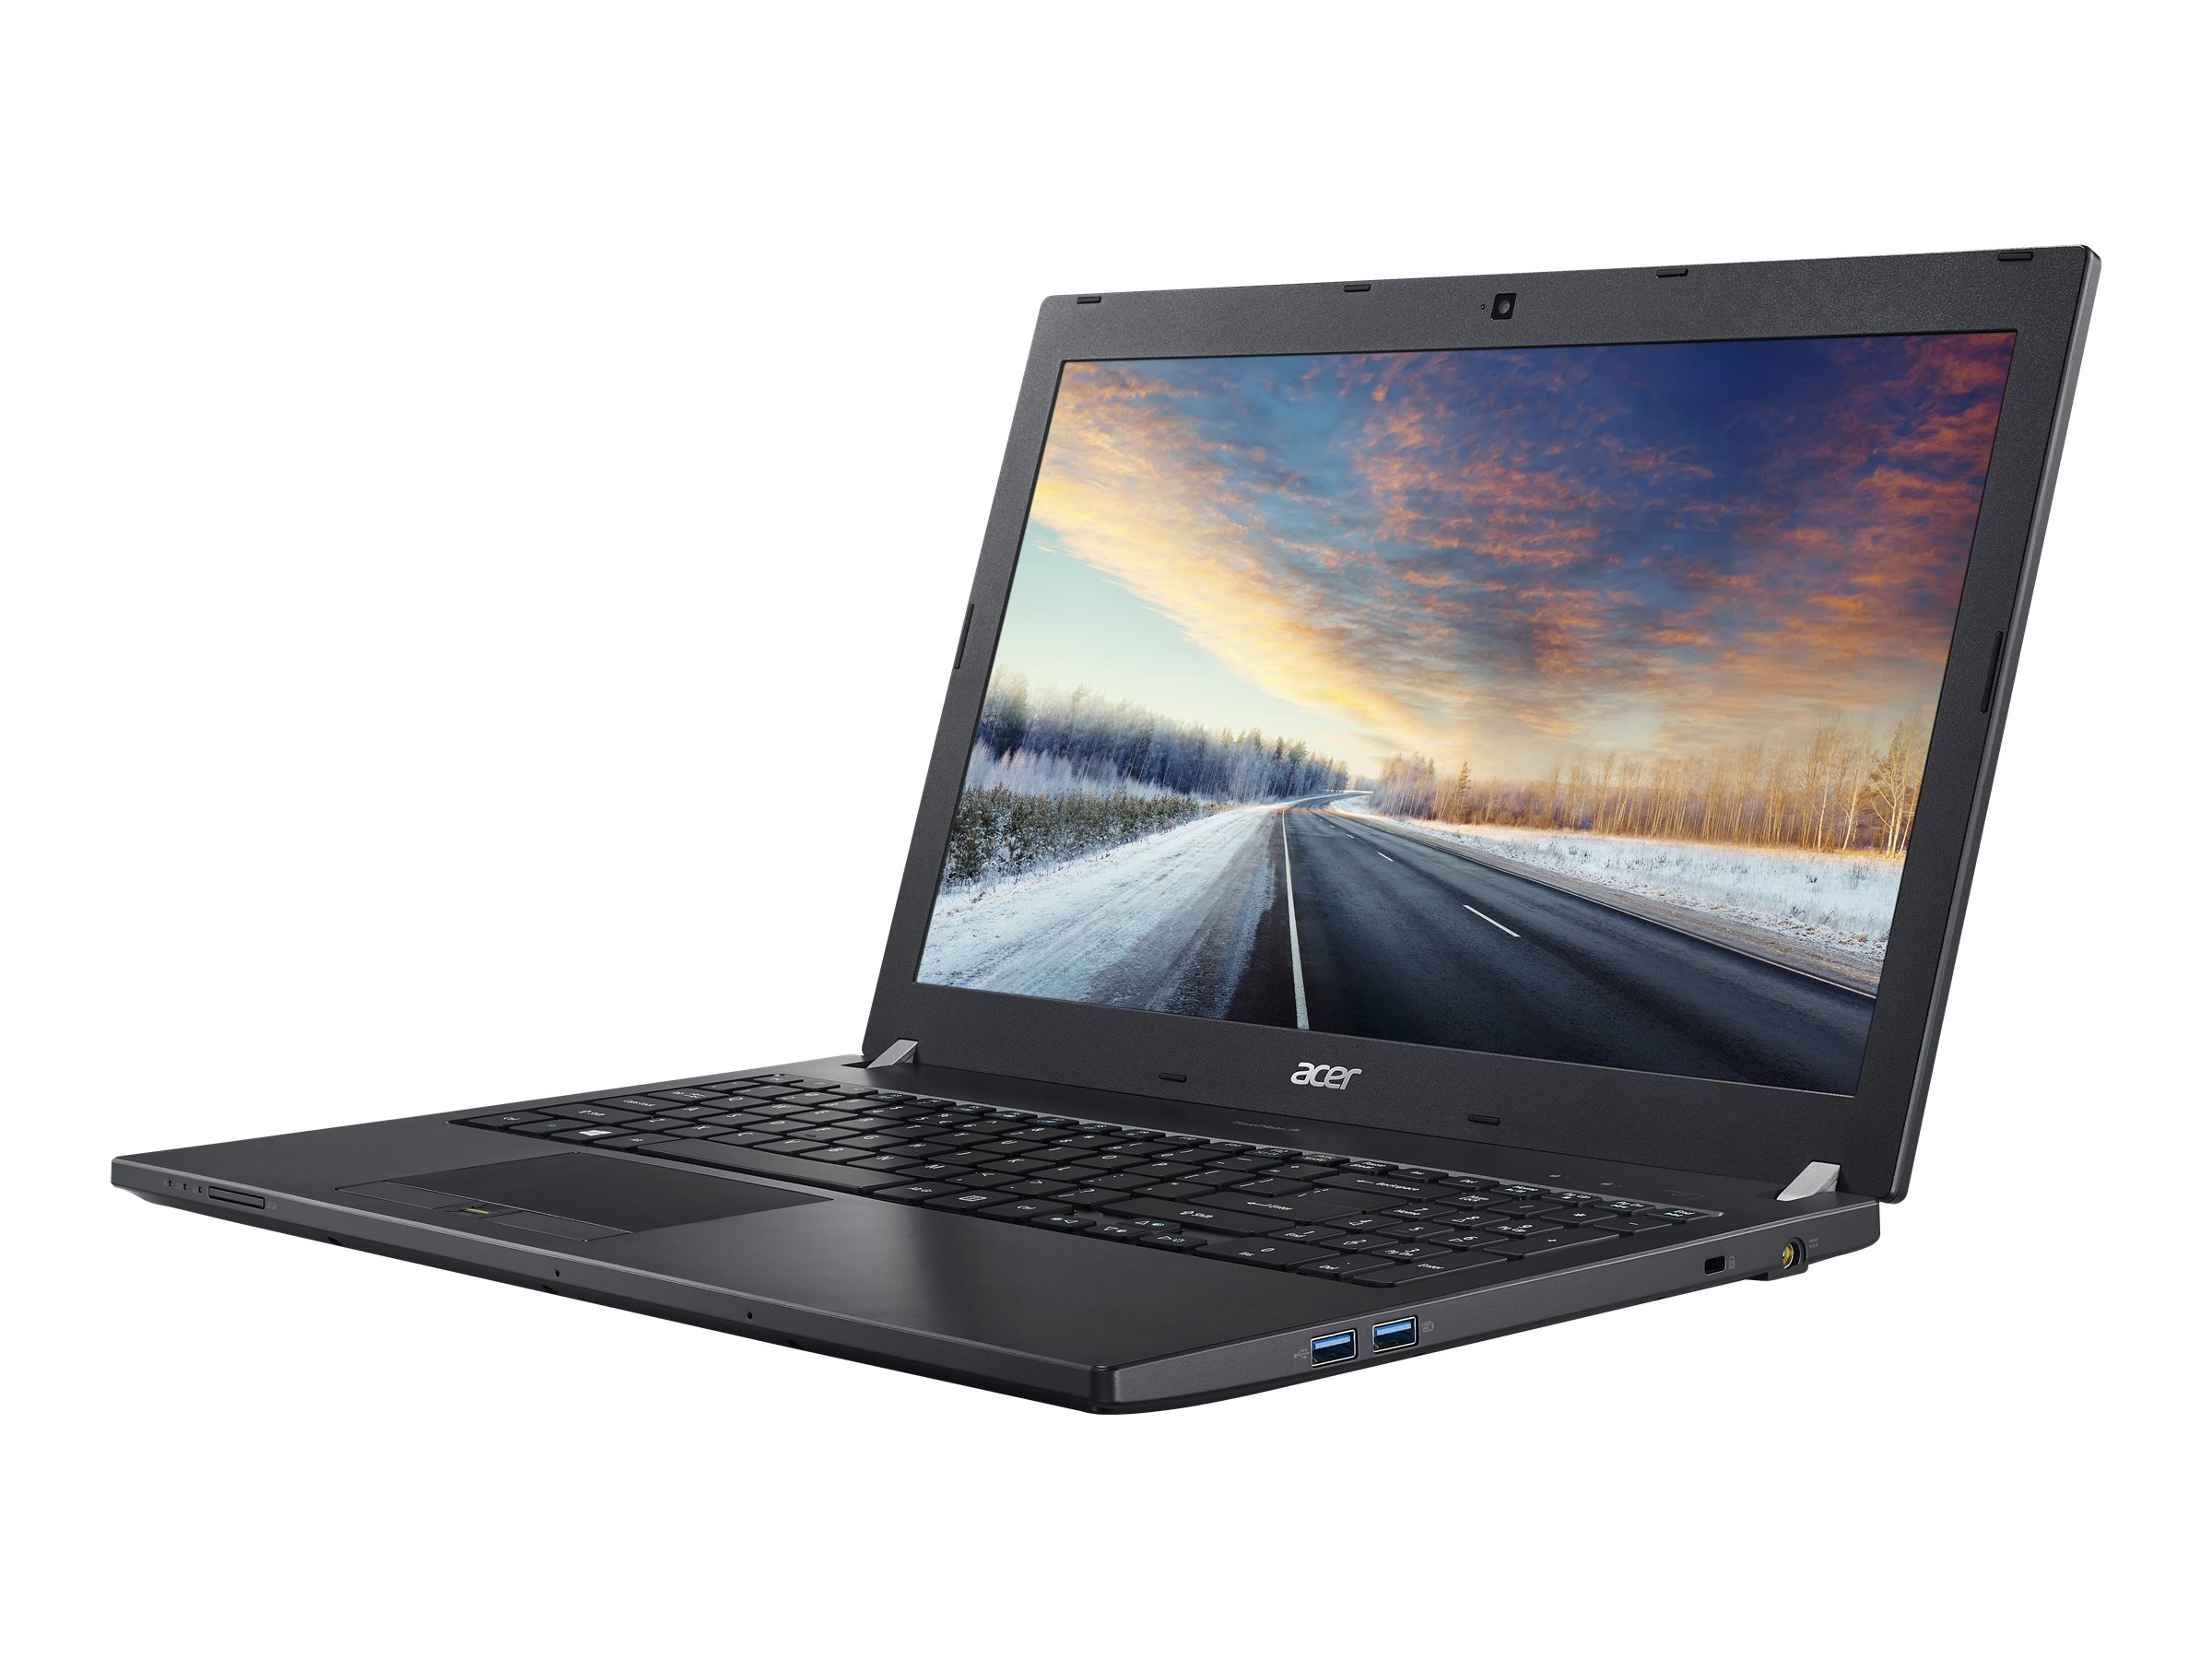 Acer Travelmate P658-M-50NJ 2.4GHz Core i5 15.6in display, NX.VCYAA.001, 31999697, Notebooks